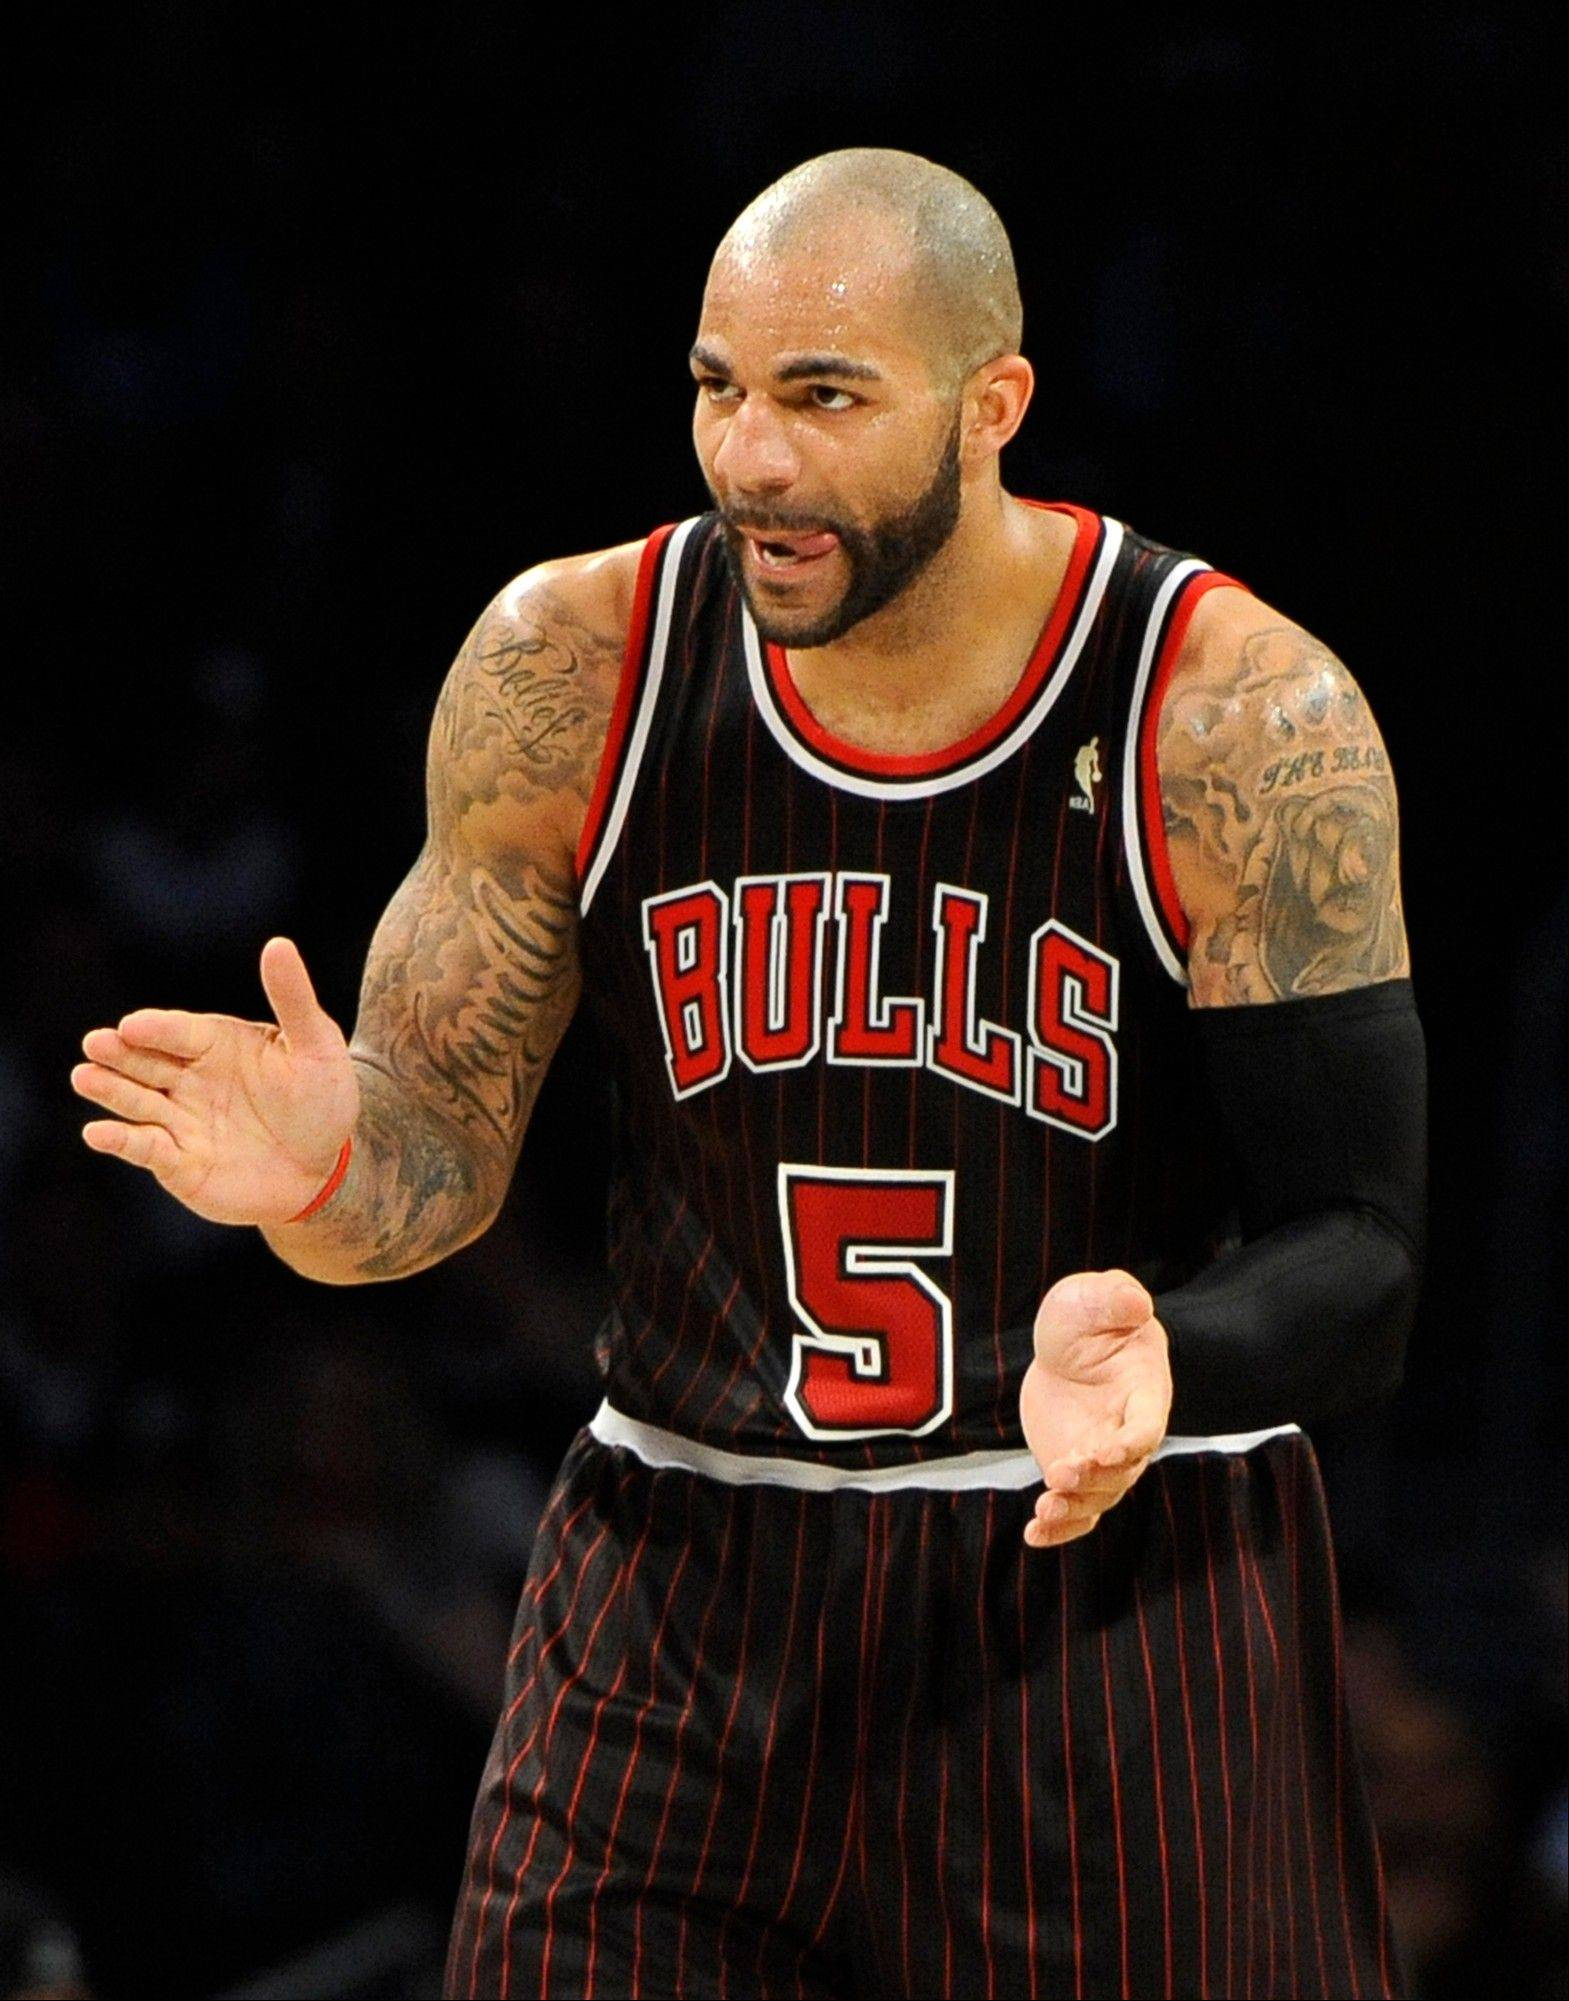 Carlos Boozer (5) celebrates as they come within one point of leading the Brooklyn Nets in the second half of an NBA basketball game on Thursday, April 4, 2013, at Barclays Center in New York. The Bulls won 92-90.